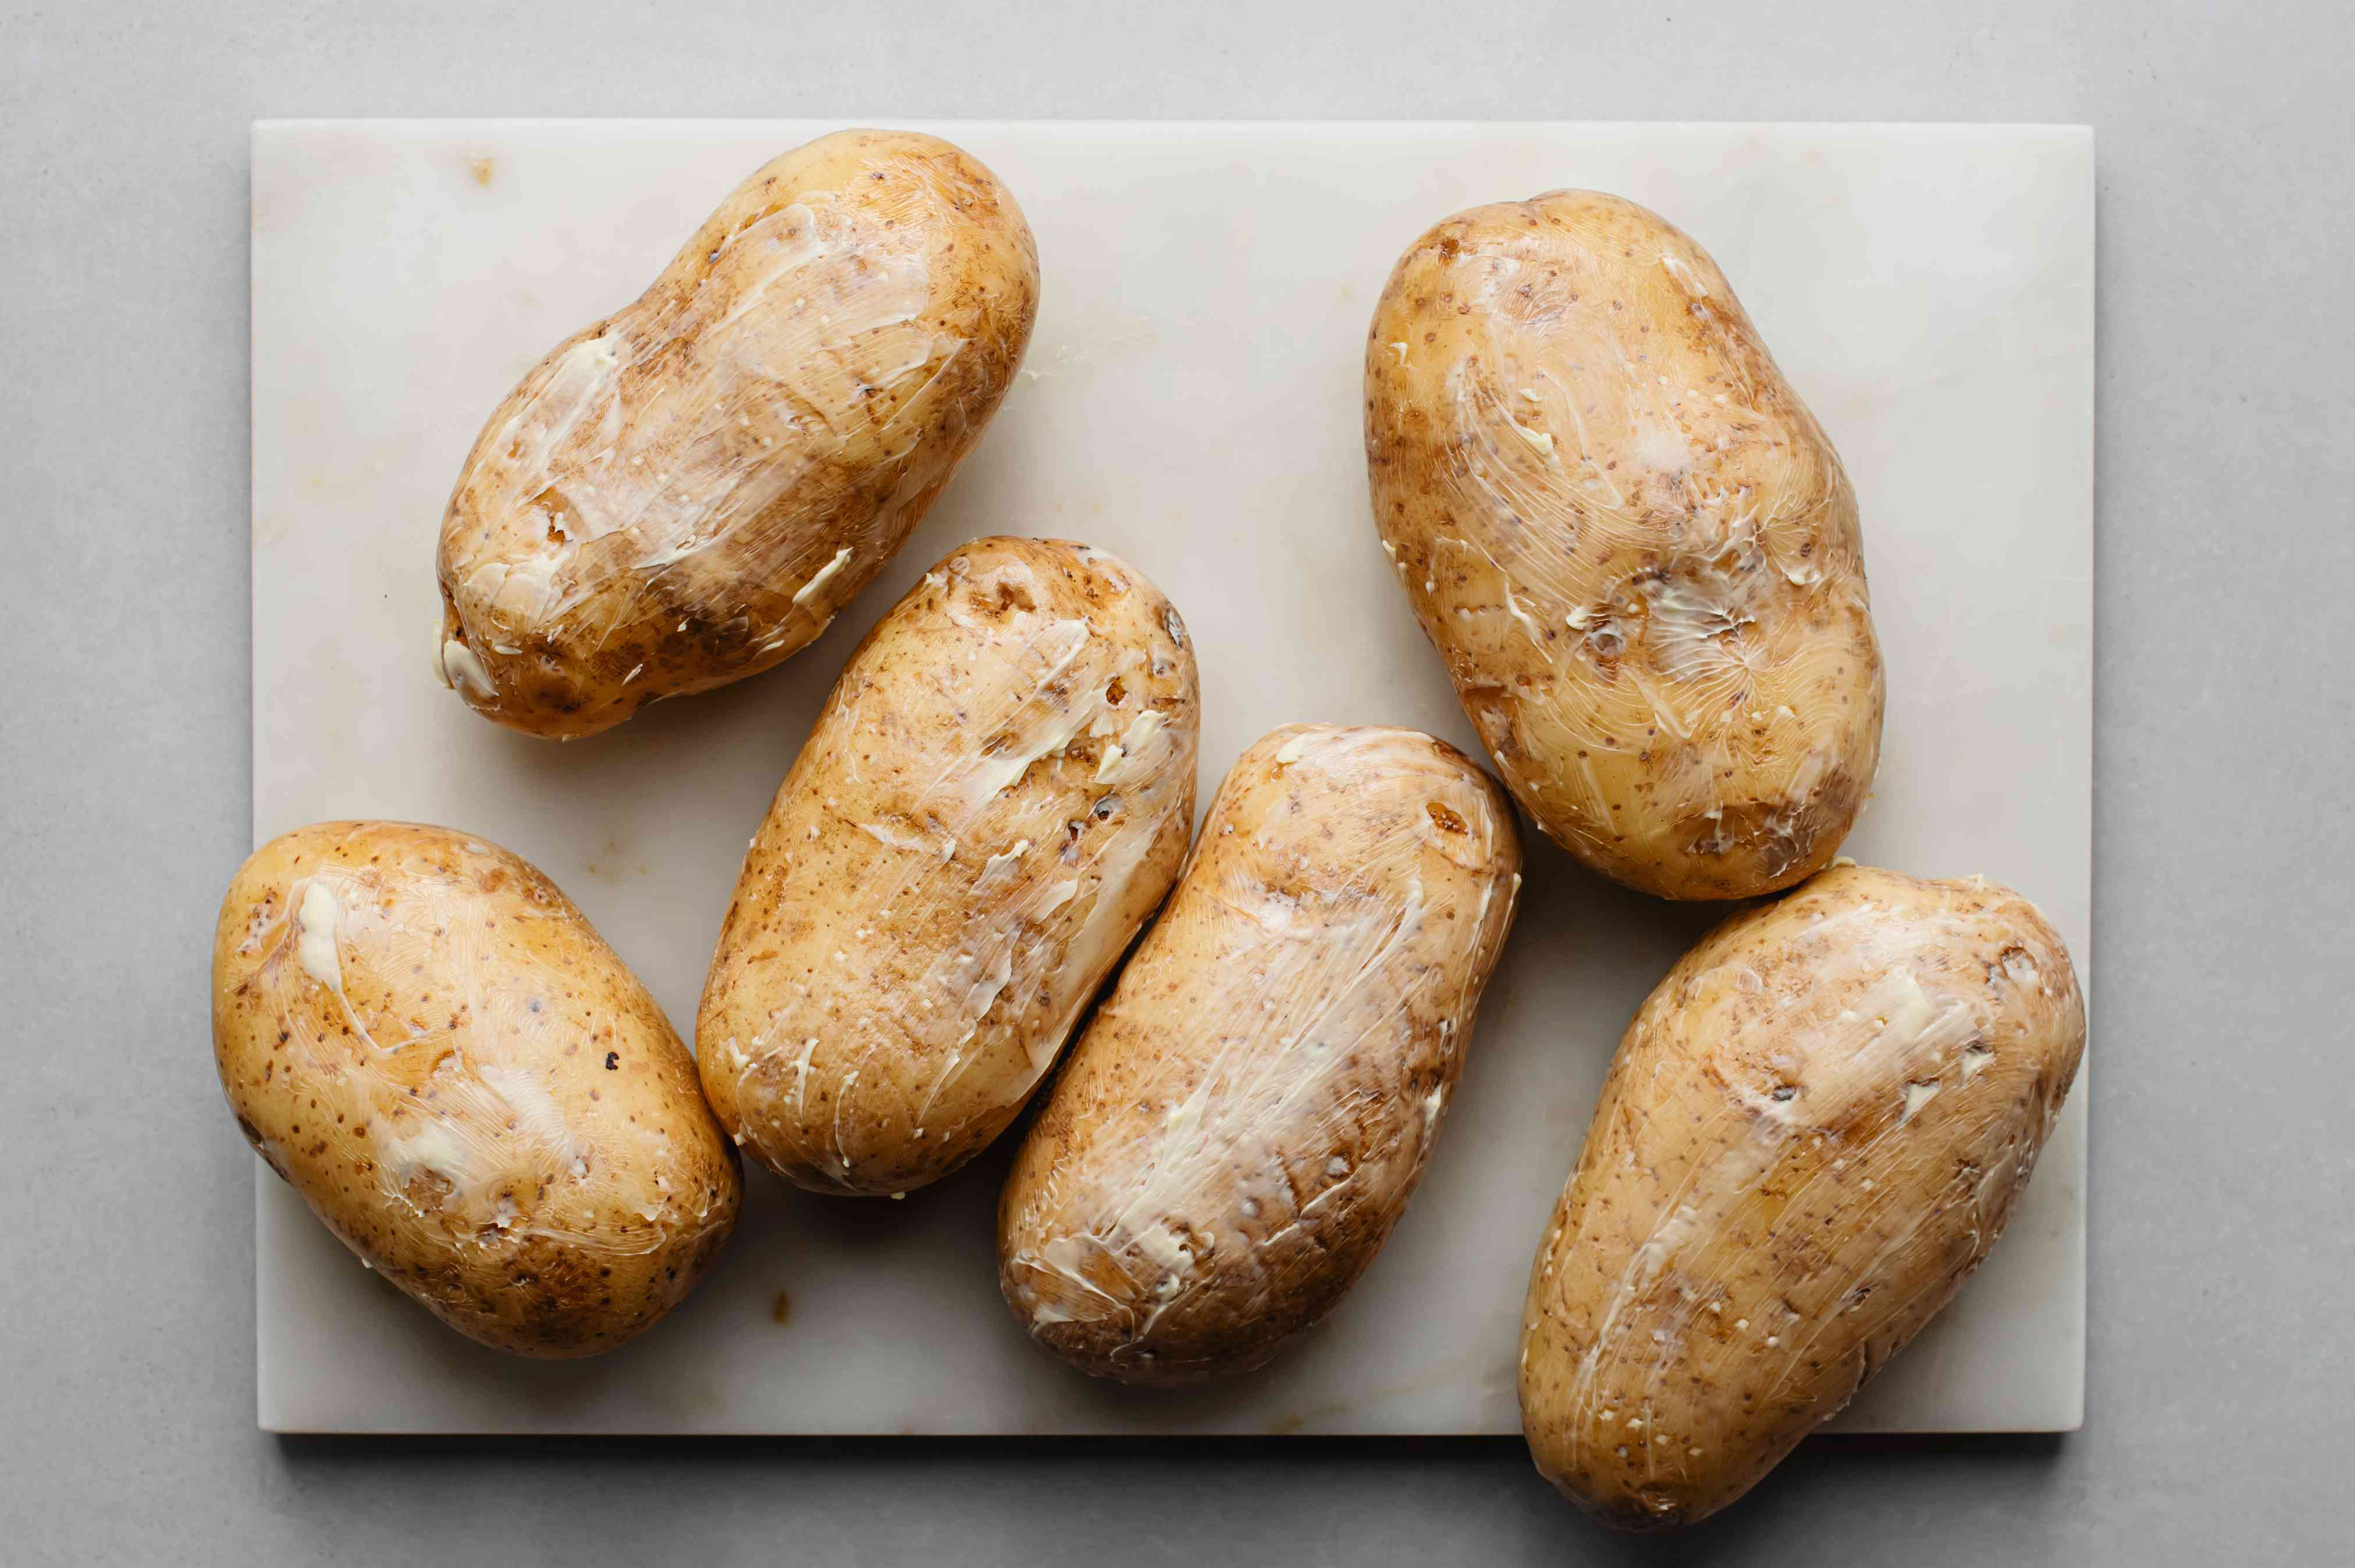 Rub the potatoes with softened butter